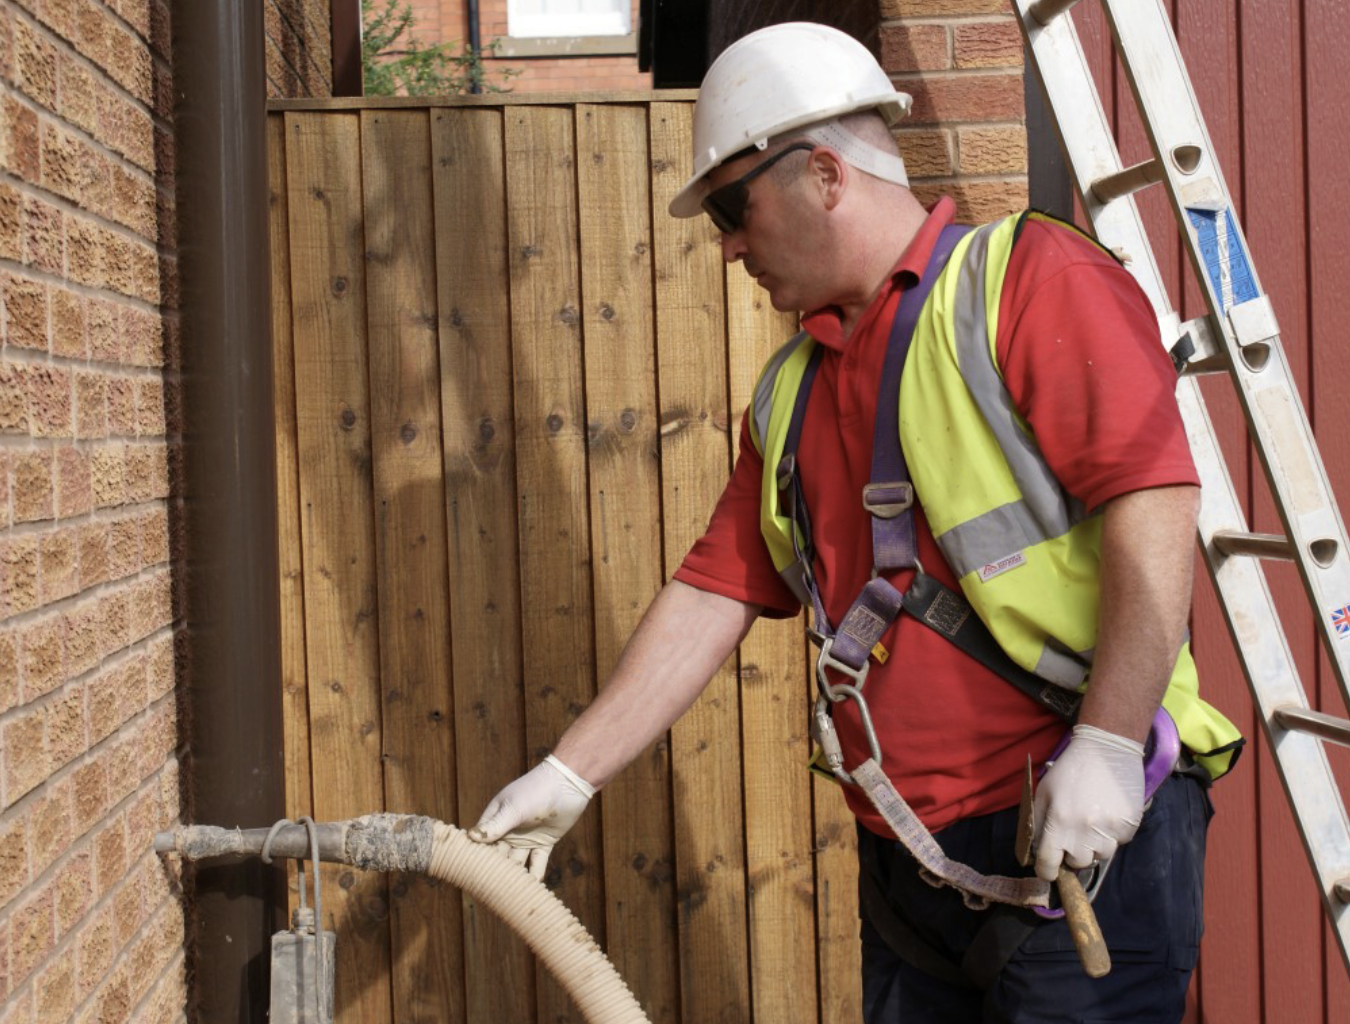 Cavity wall insulation could save your hundreds of pounds a year on fuel bills.